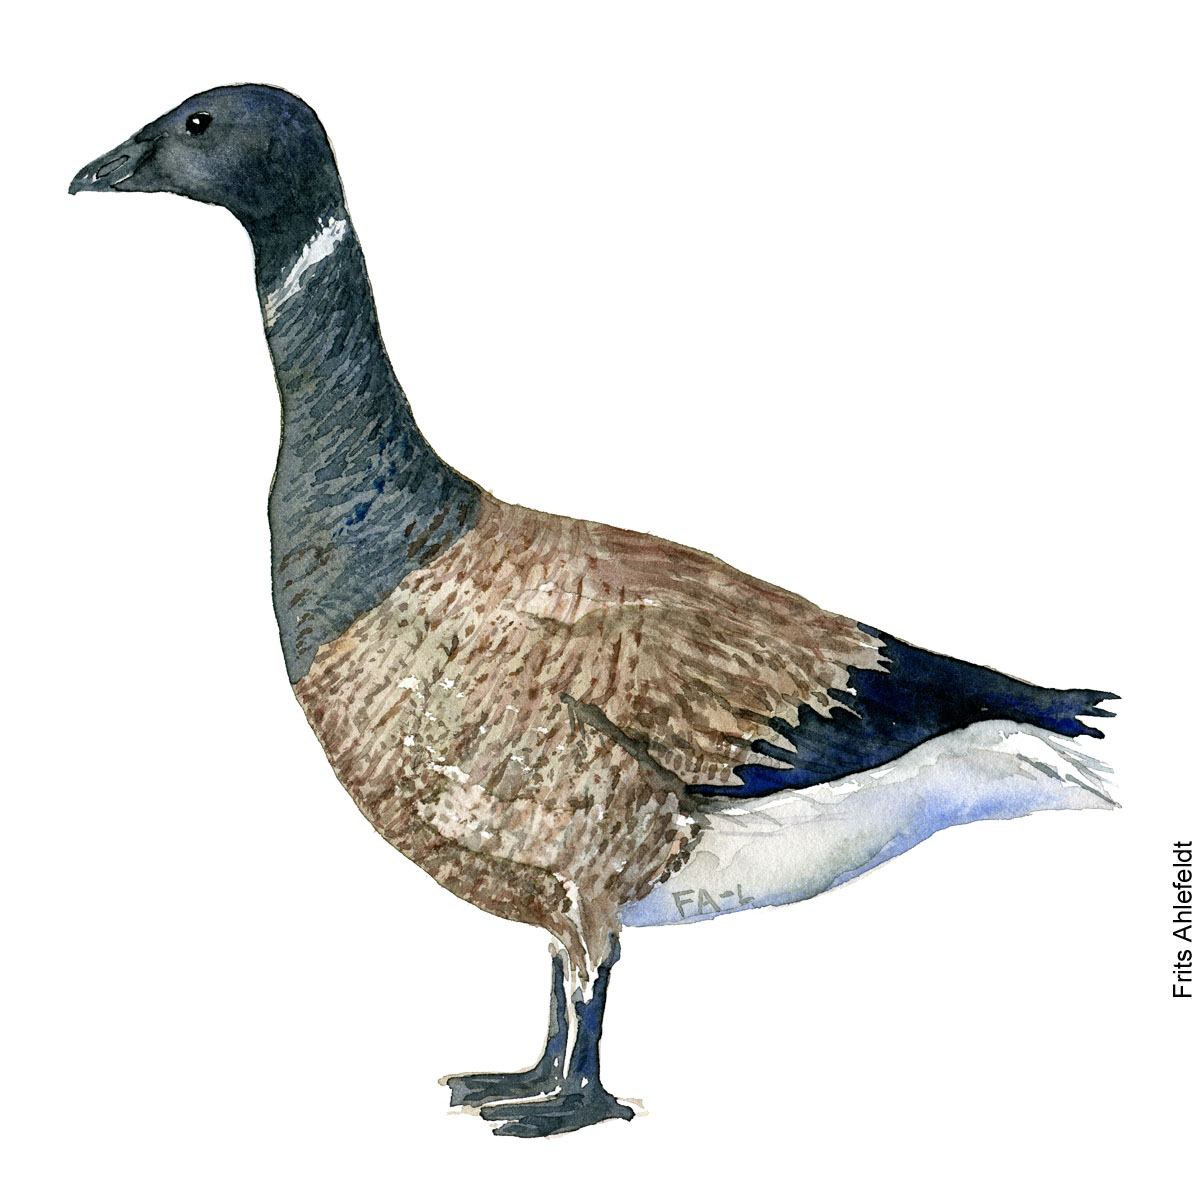 Brant goose. Bird watercolor illustration handmade by Frits Ahlefeldt